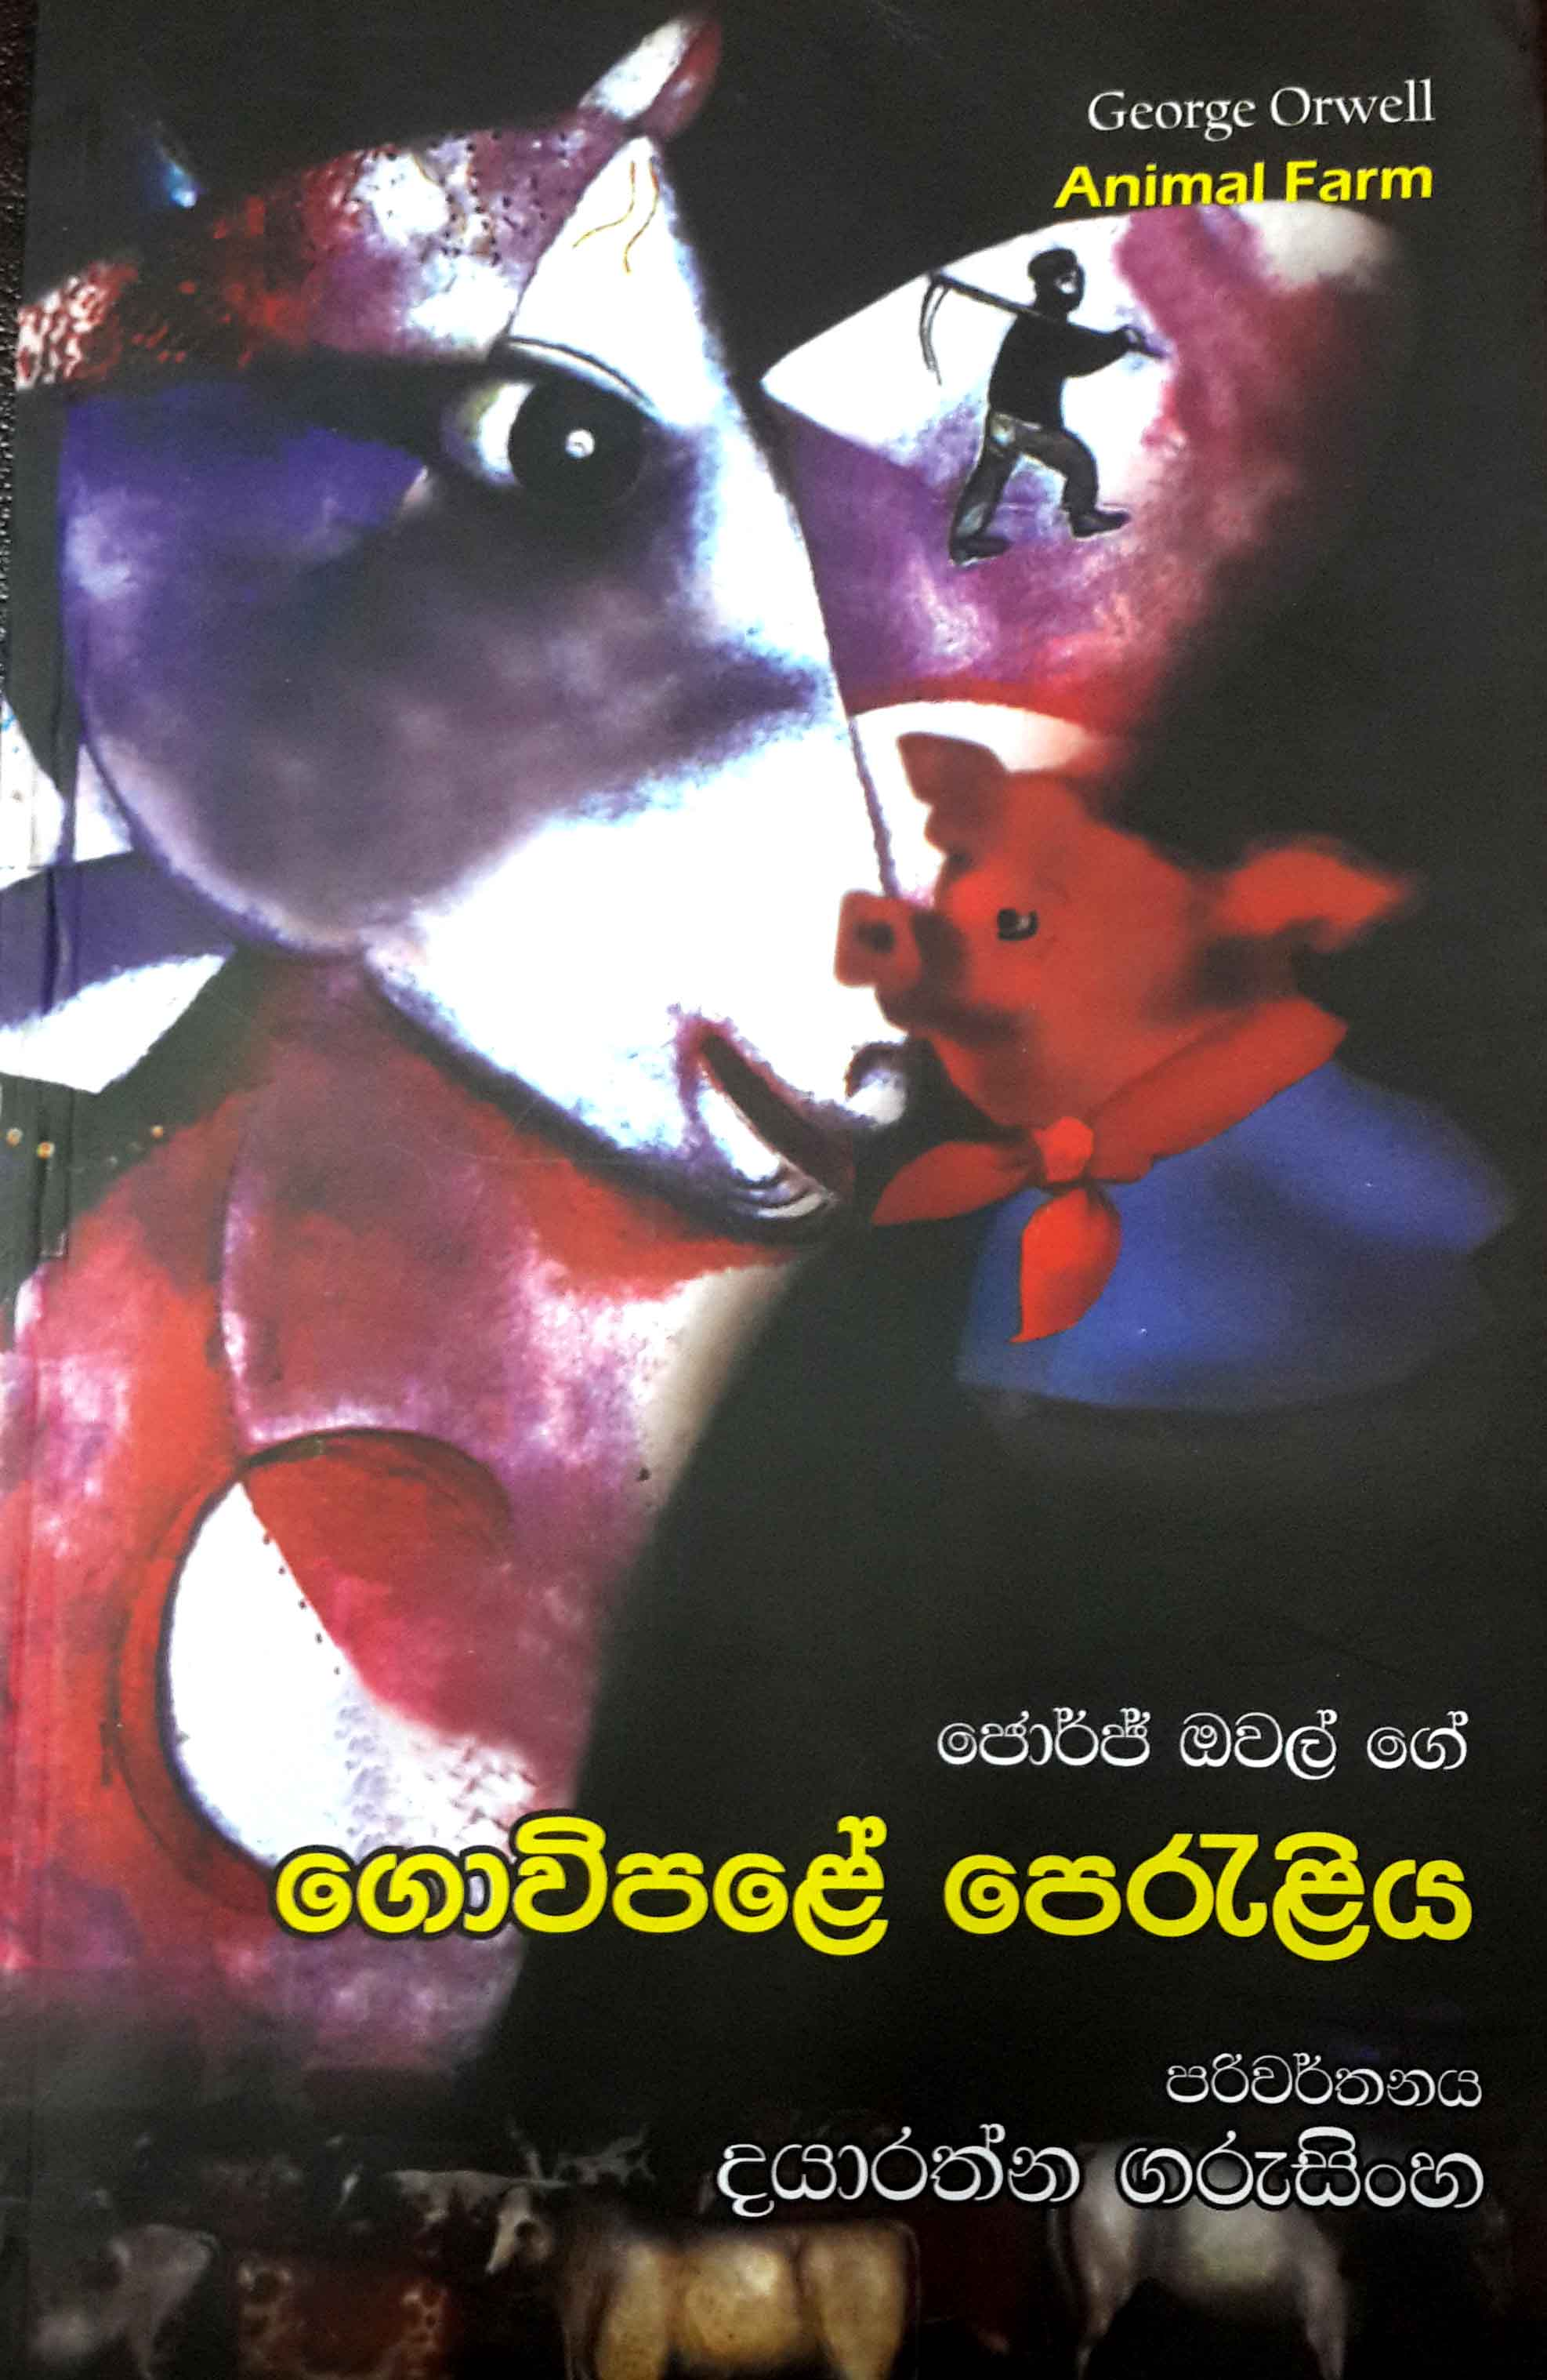 Govipale Peraliya ( Sinhala translation of George Orwell's